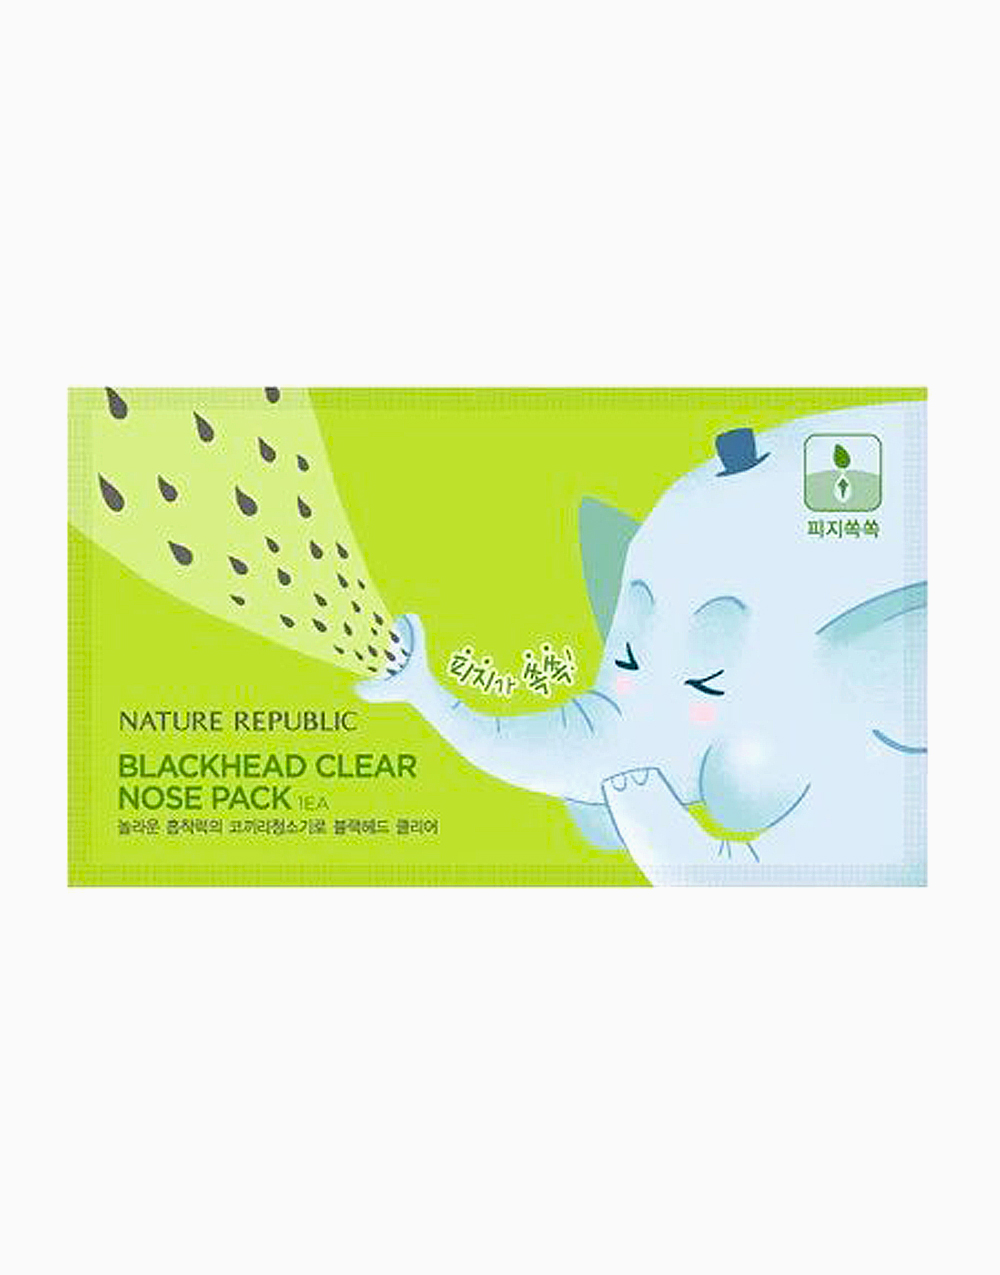 Blackhead Clear Nose Pack (1ea) by Nature Republic